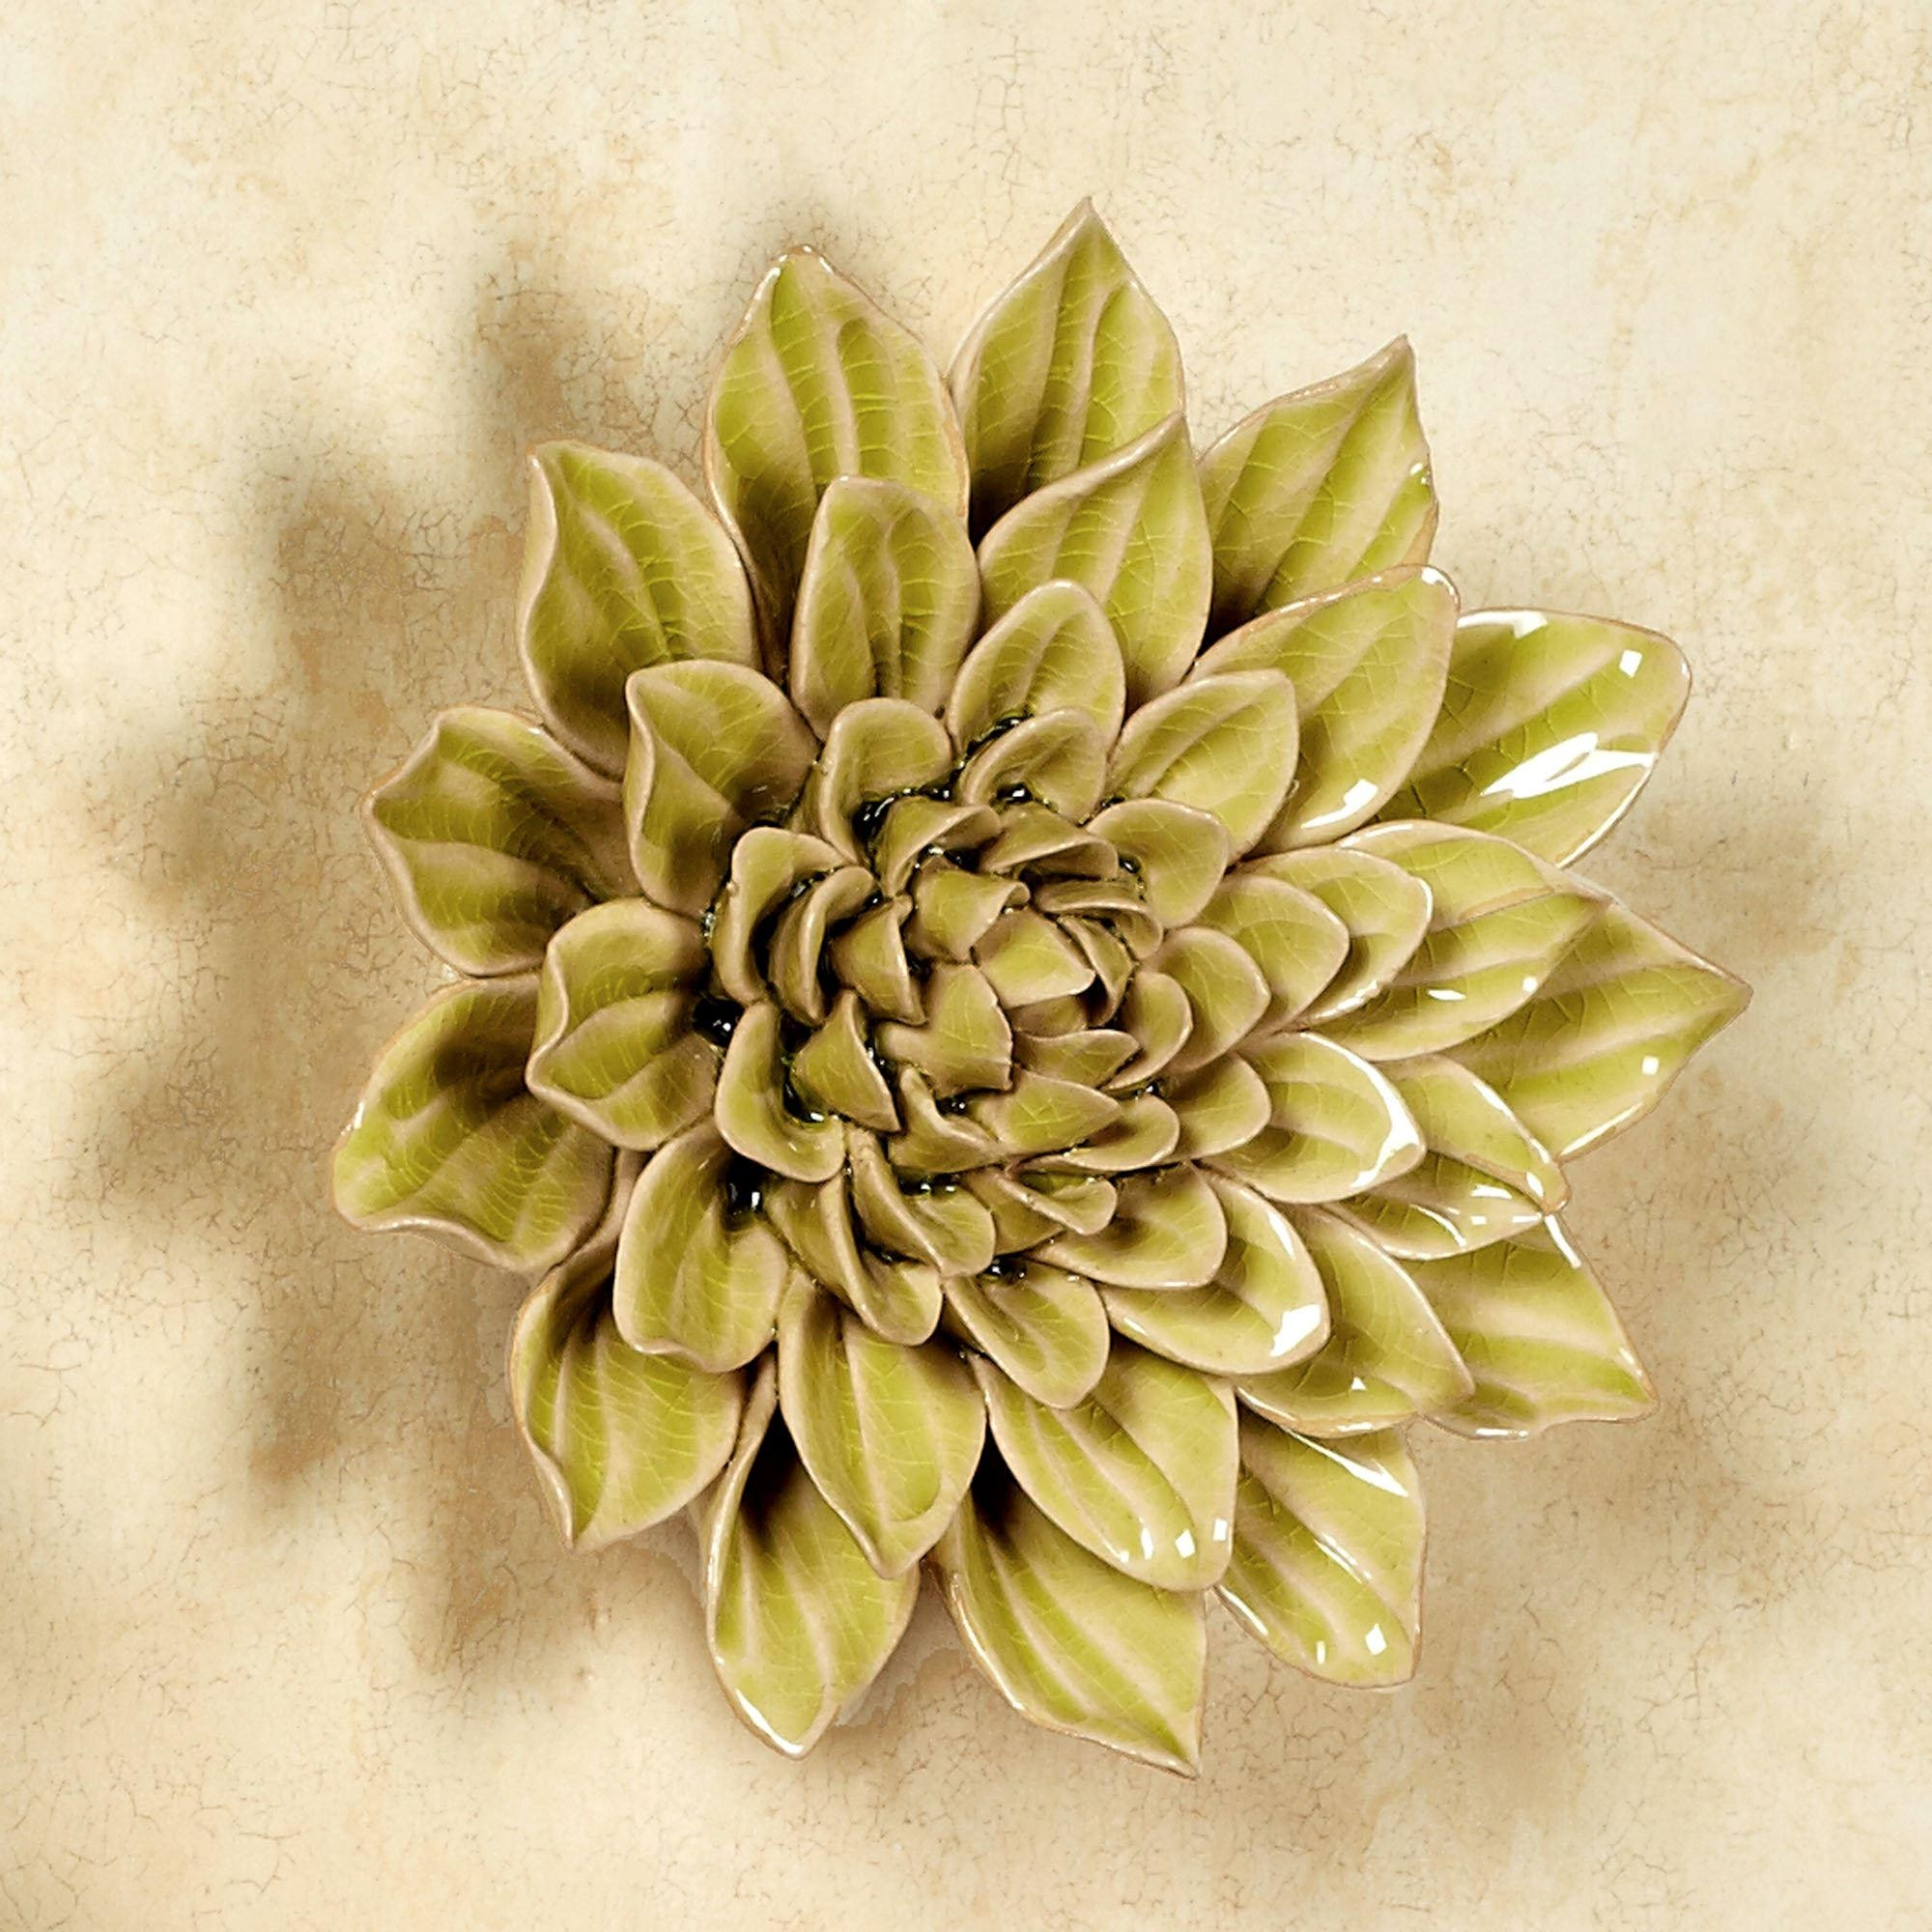 Isabella Ceramic Flower Blossom Wall Art Pertaining To Italian Ceramic Wall Art (View 8 of 20)